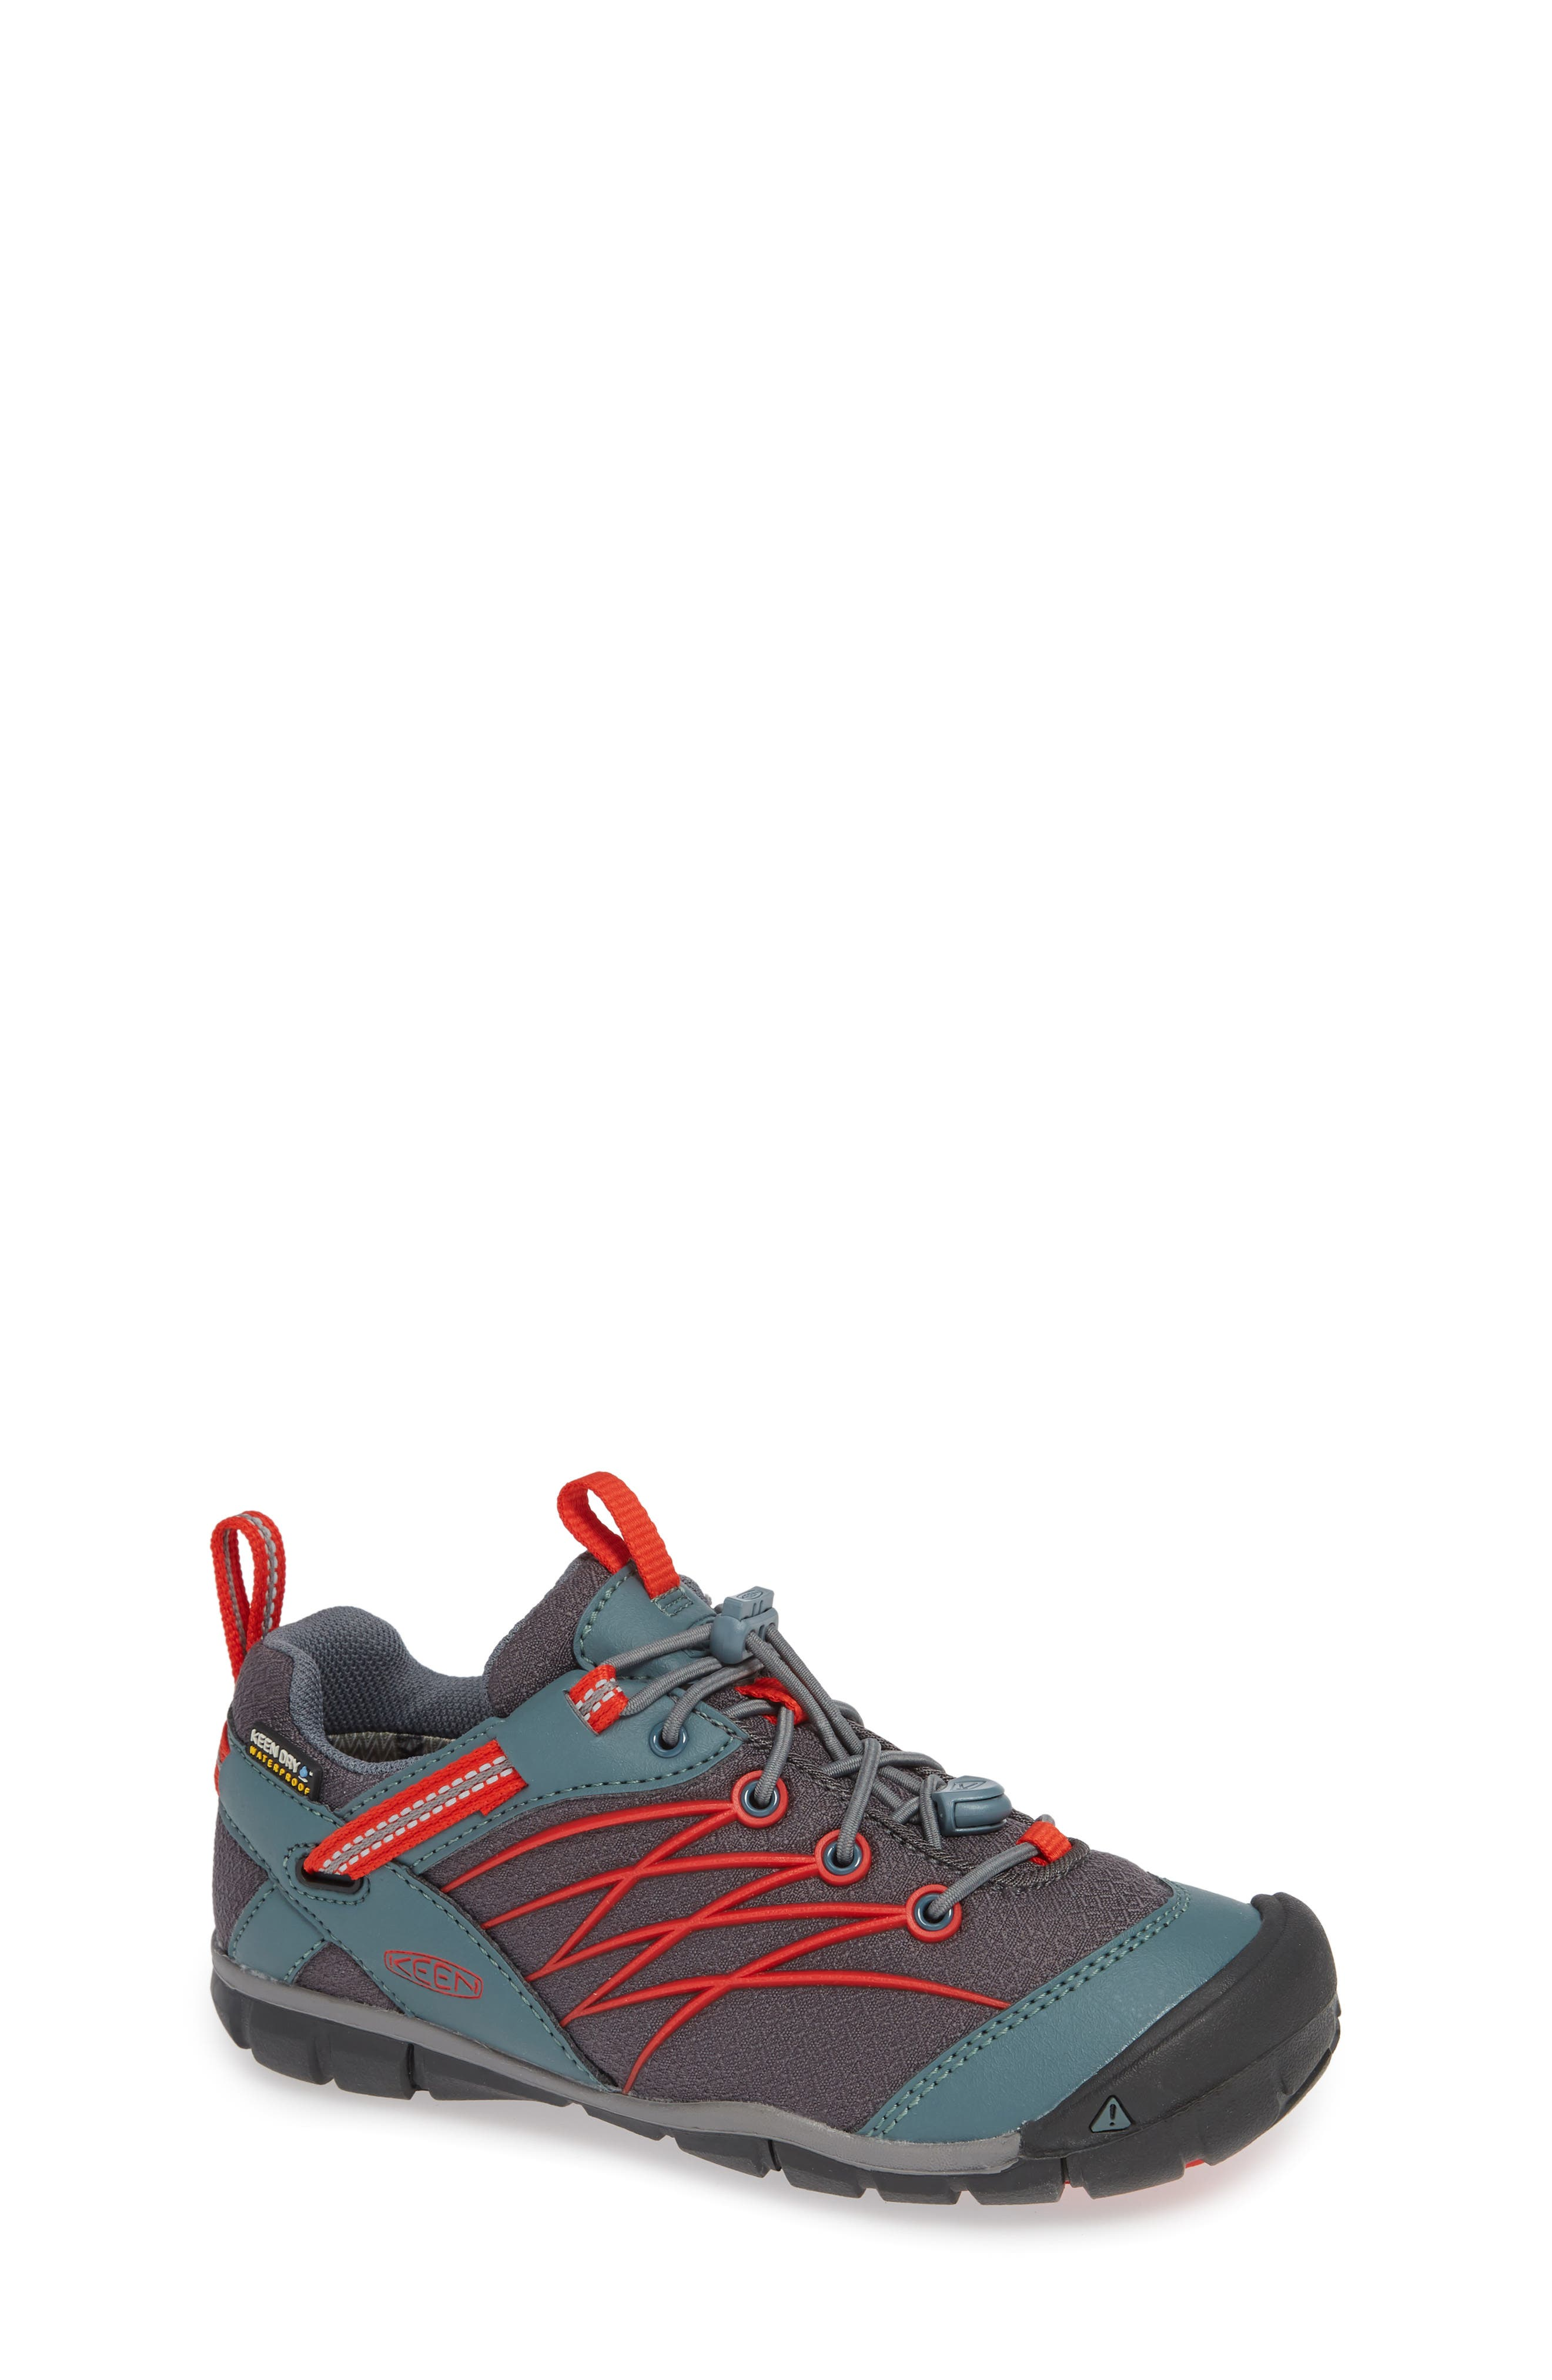 Chandler CNX Waterproof Sneaker,                         Main,                         color, STORMY/ RED